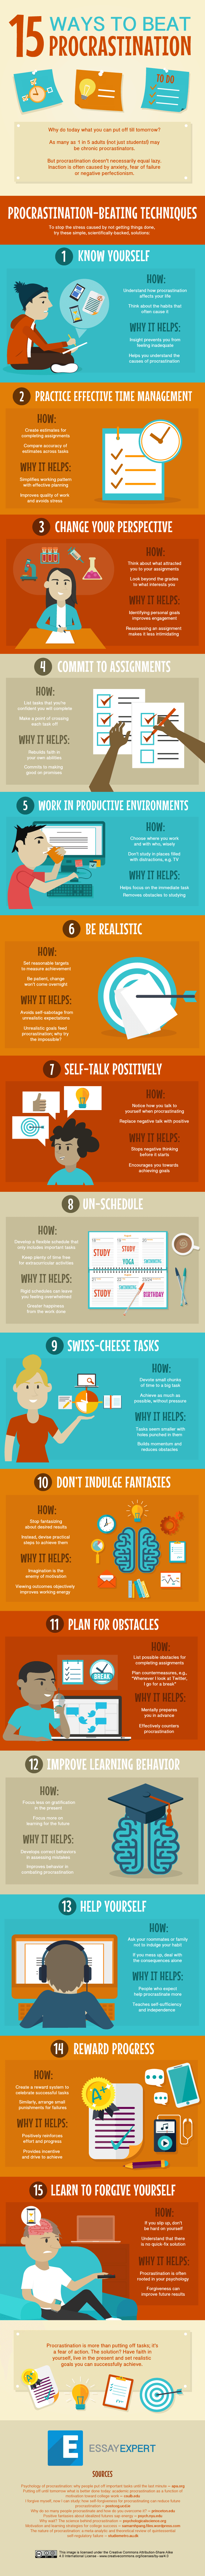 15 Ways Students Can Beat Procrastination Infographic